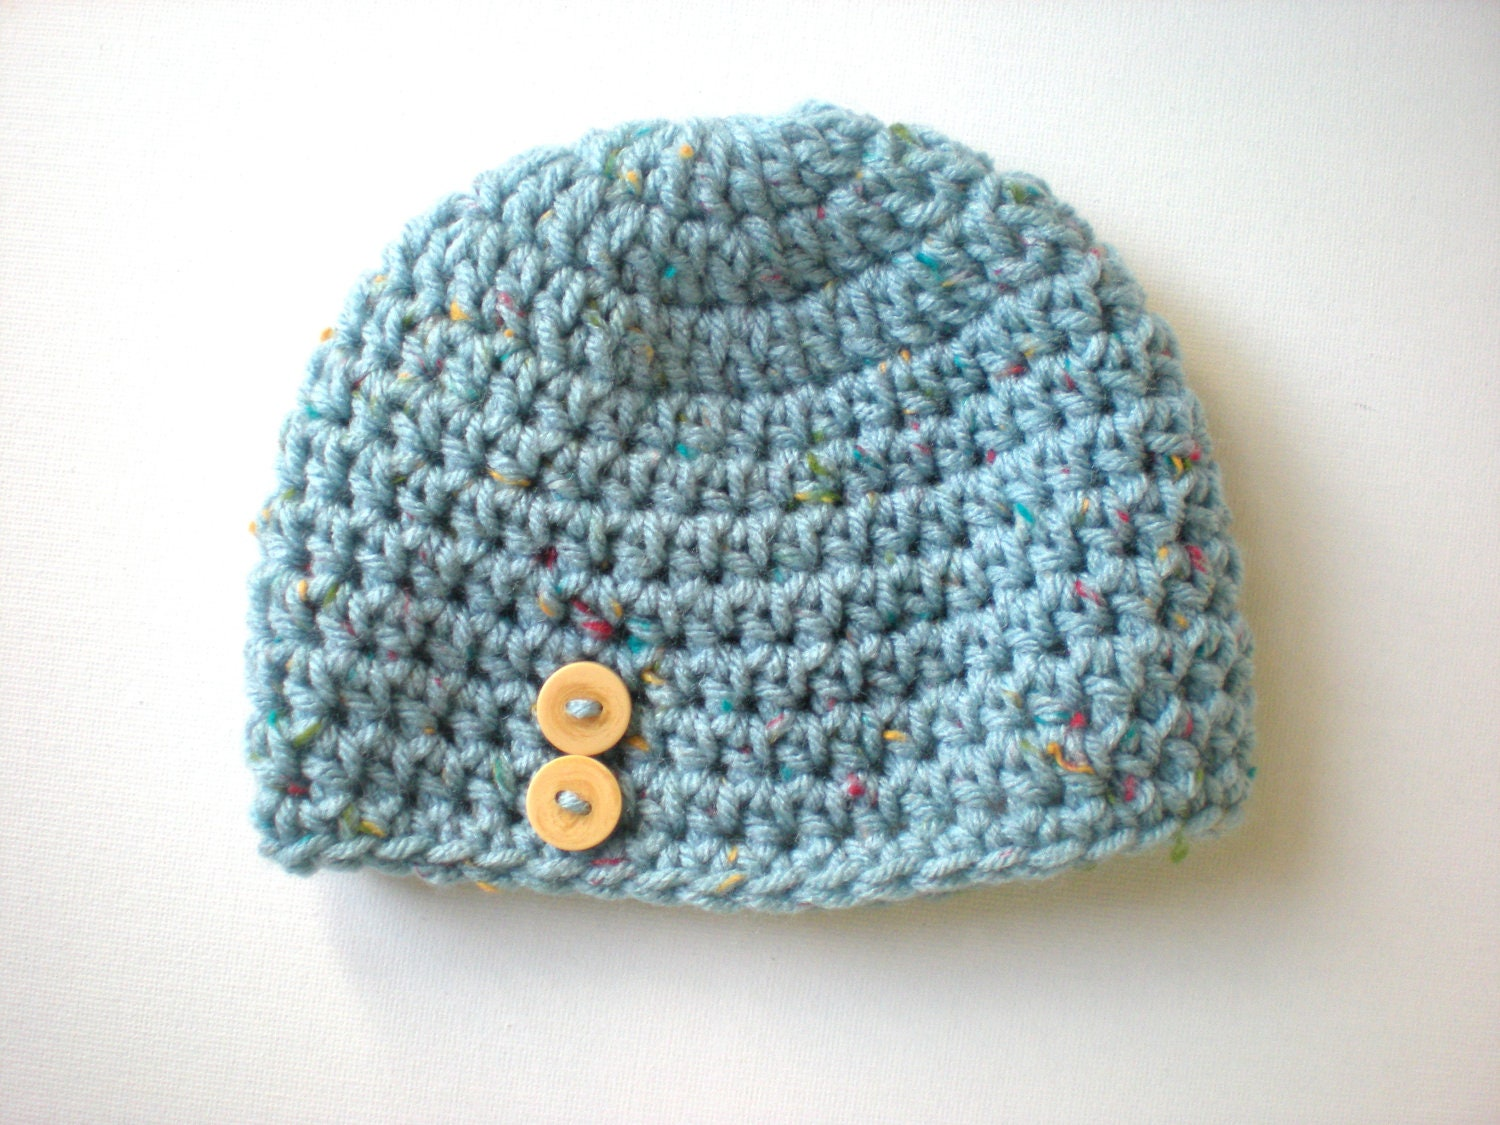 Crochet Basic Beanie Hat Pattern : PATTERN: Basic Beanie easy crochet PDF InStAnT DoWnLoAd